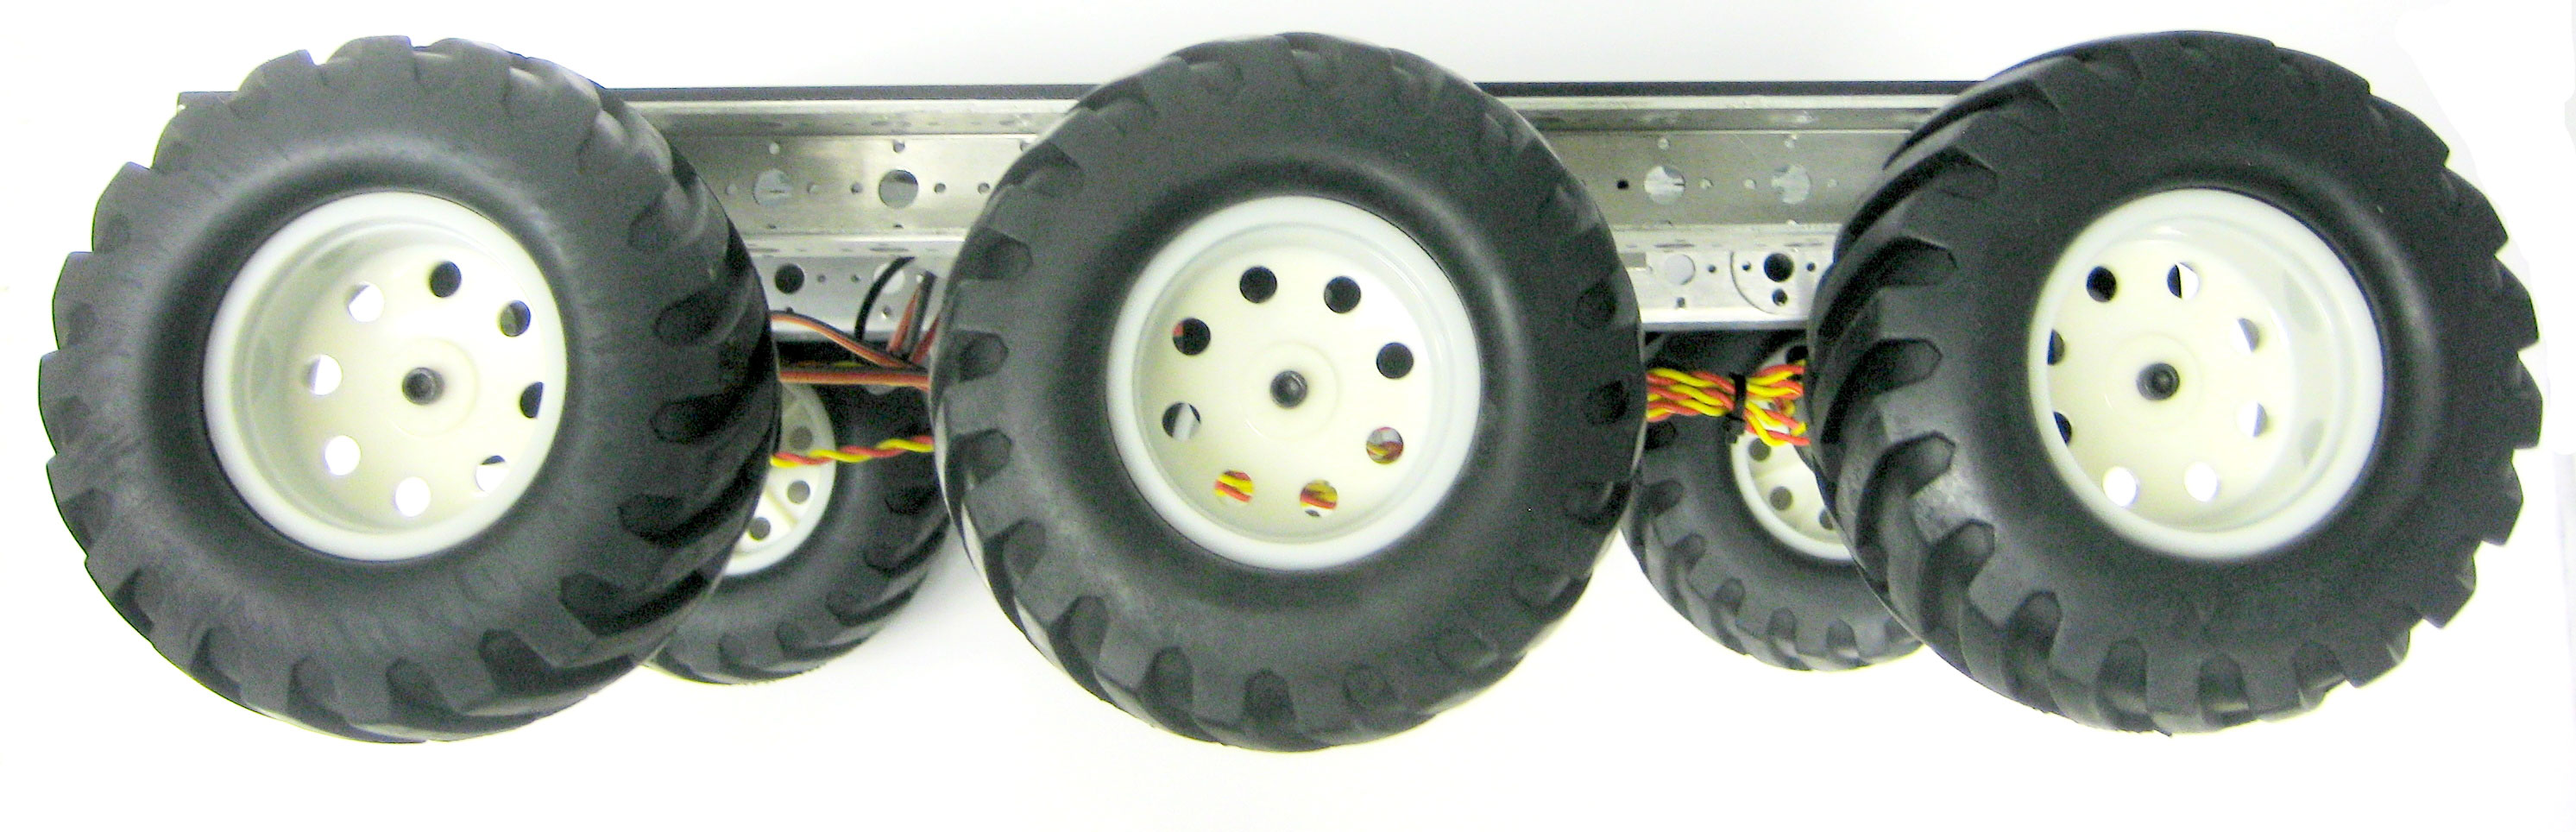 A6WD2 Rover Side